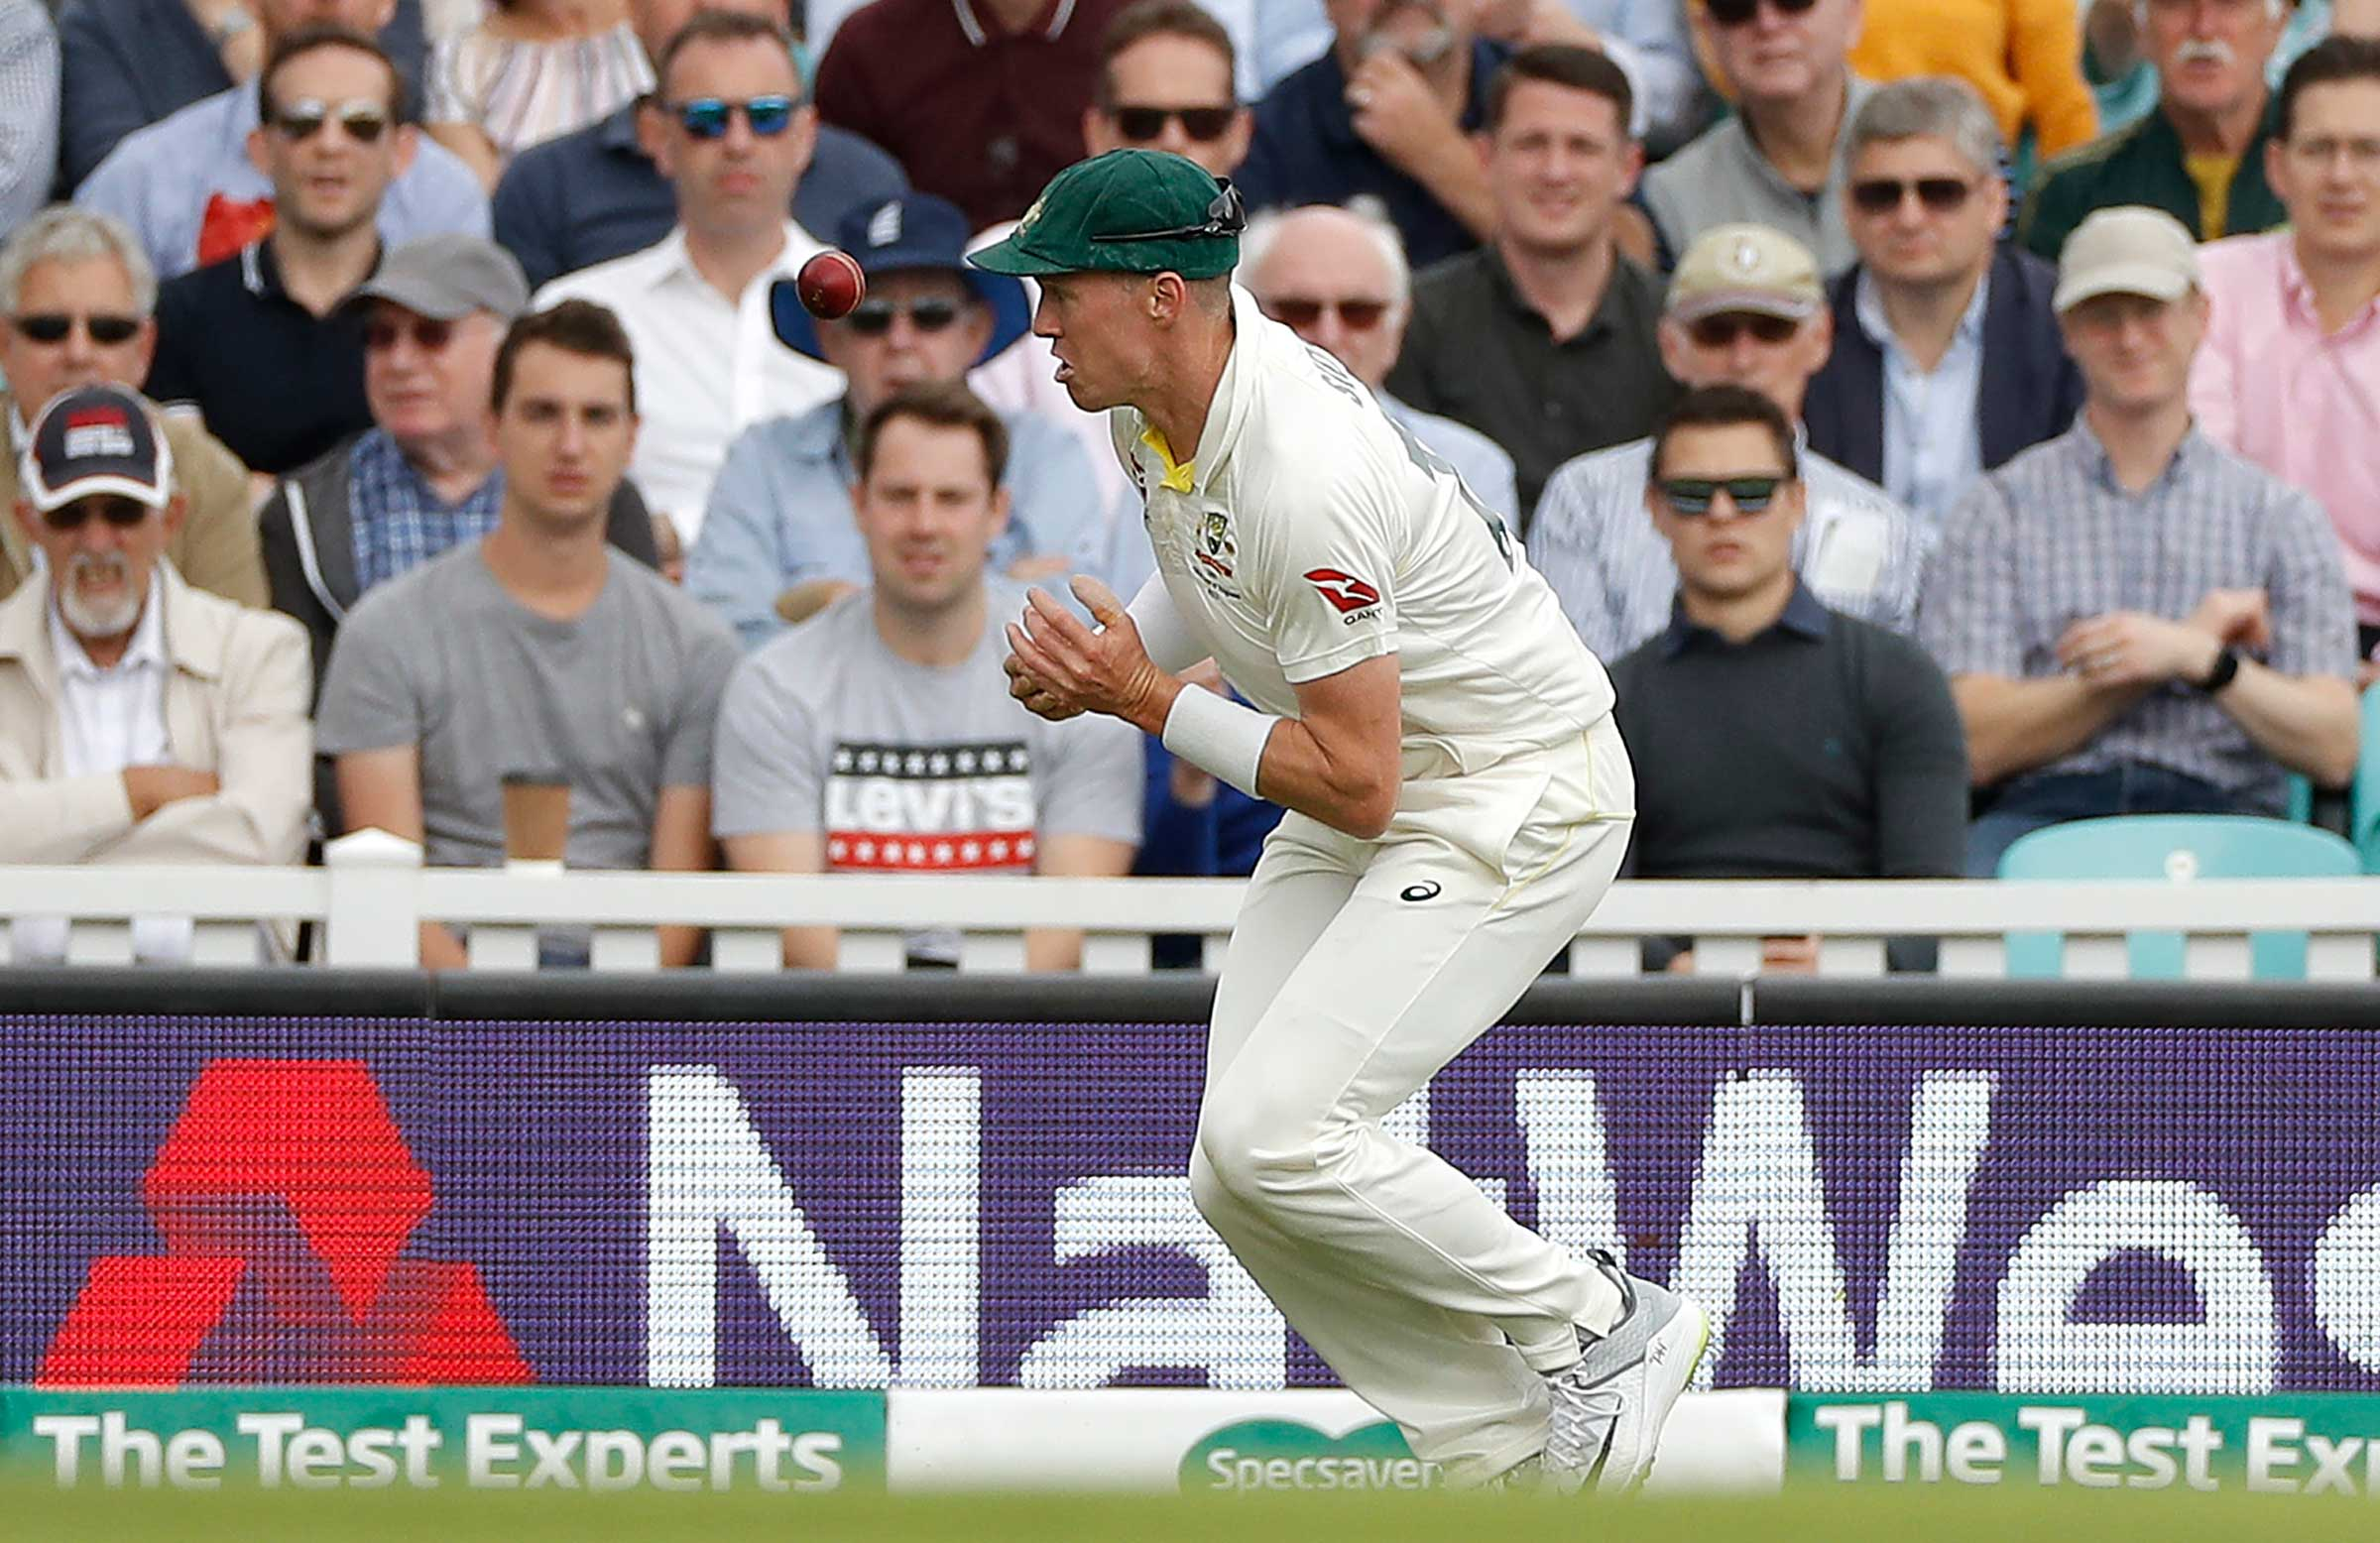 Peter Siddle puts down Joe Root in the deep // Getty